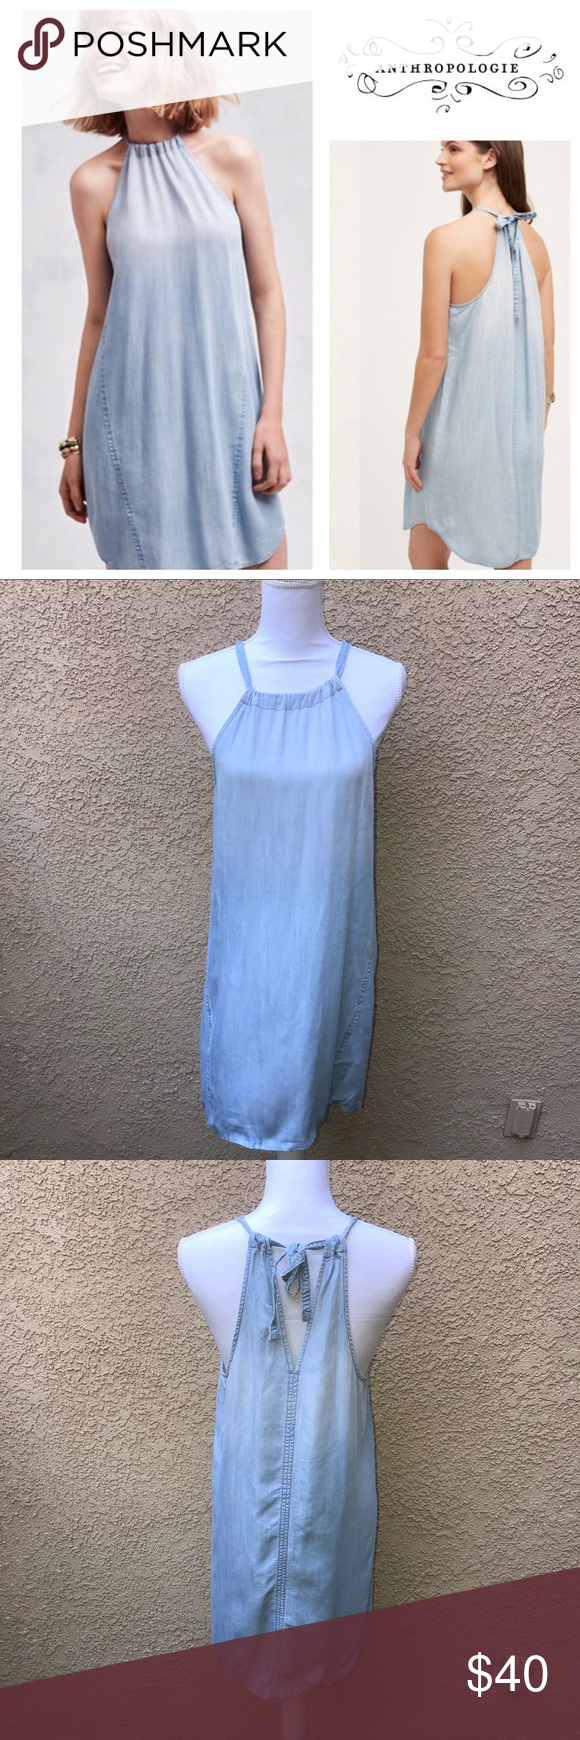 17eea7a998fa [Anthropologie] Cloth + Stone Chambray High Tide Details: ▫️Size: S  ▫️Condition: Pre-Owned, Excellent Condition 📍Ships from Los Angeles, ...